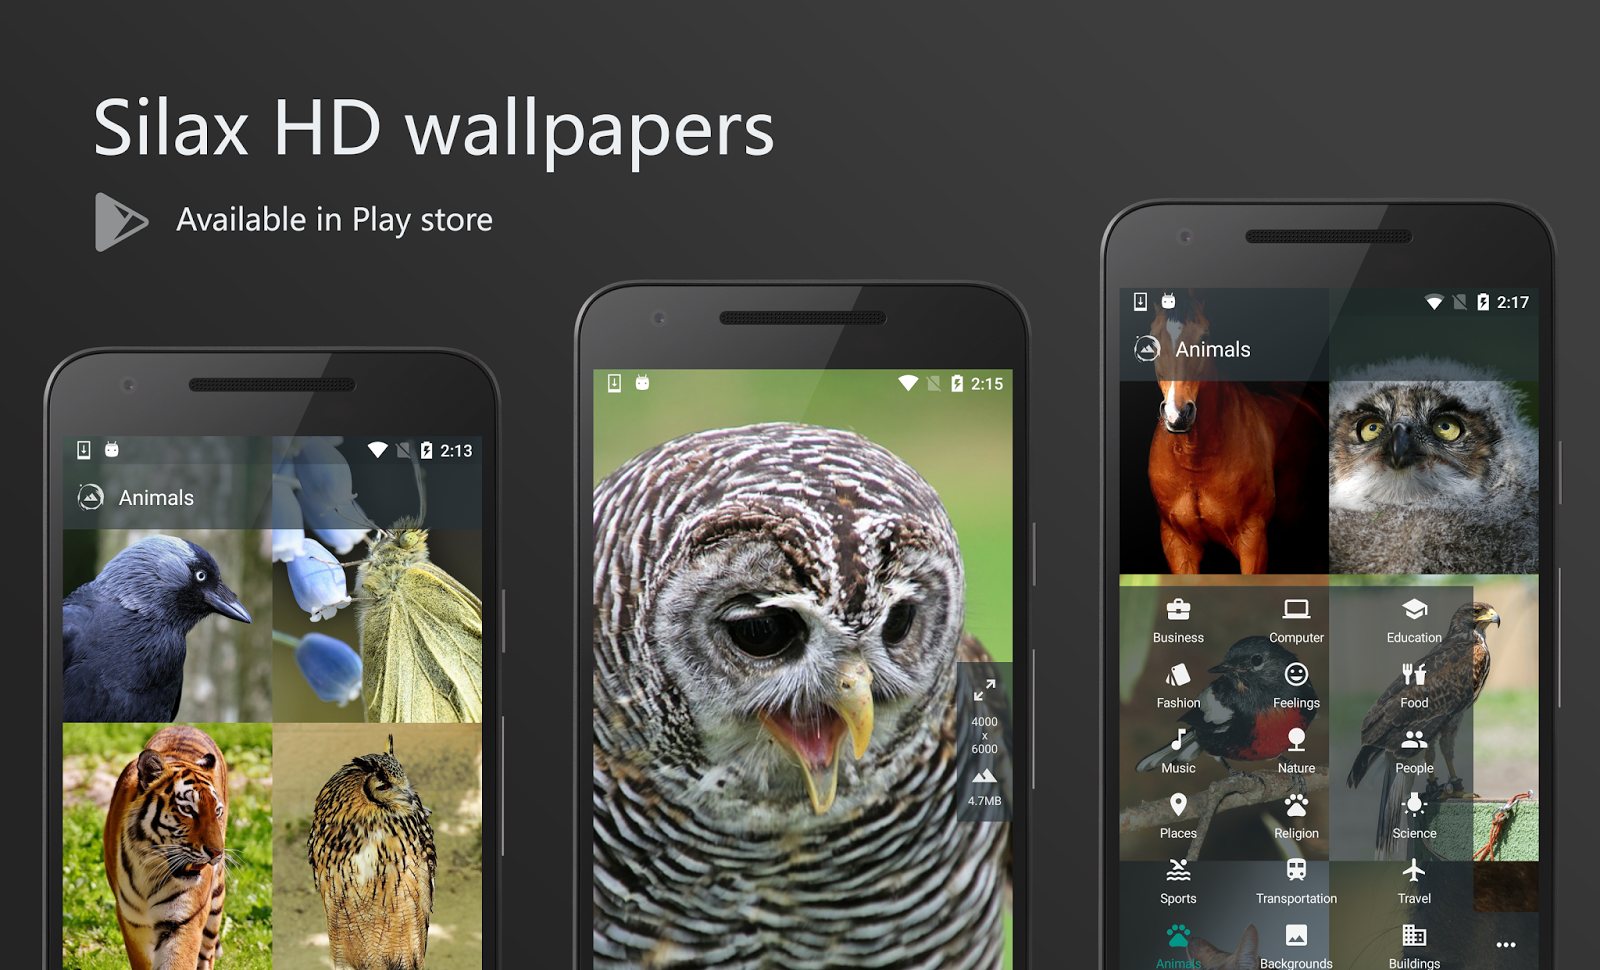 App 4 1 Silax Hd Wallpapers App Full Hd 2k 4k Images